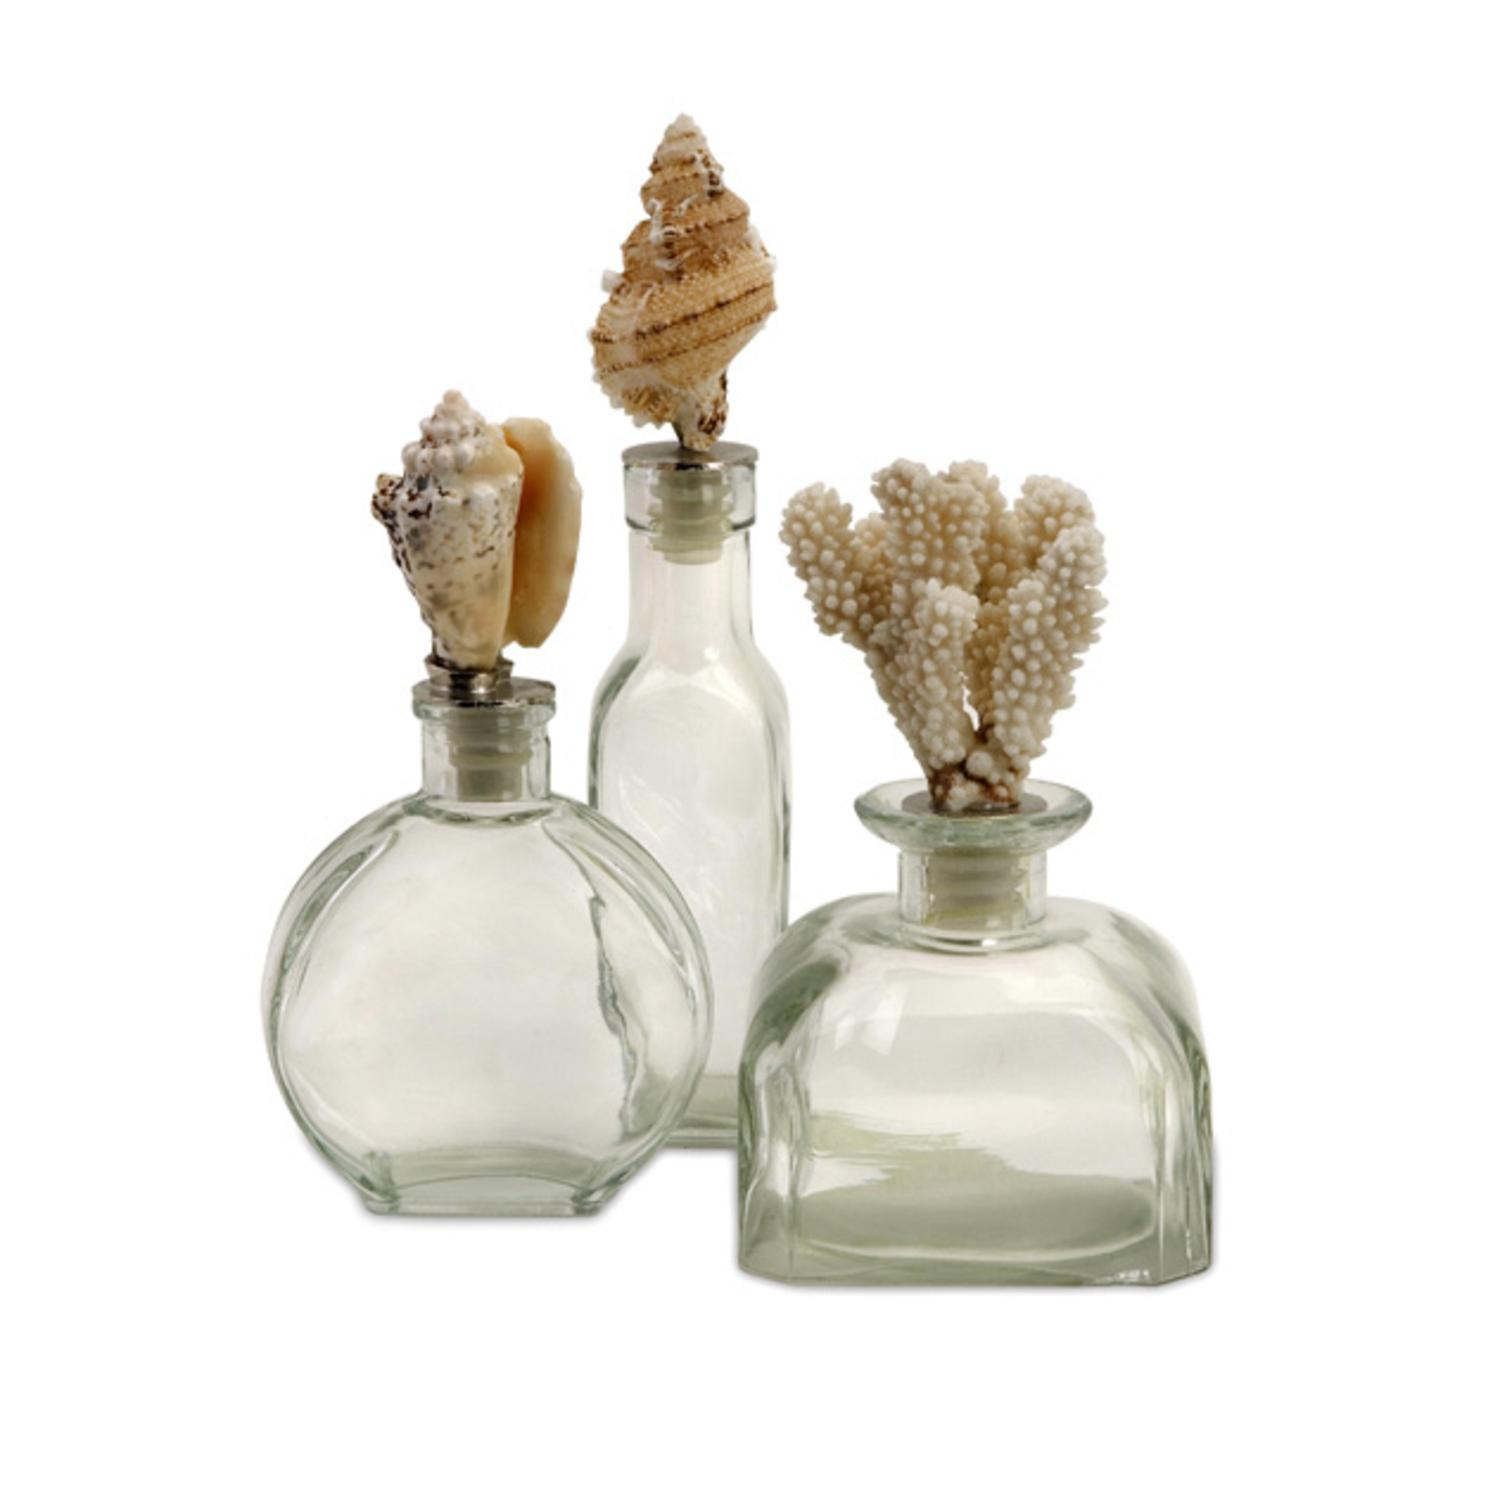 Decorative Clear Glass Bottles Prepossessing Set Of 3 Decorative Clear Glass Bottles With Nautical Sea Shell Design Ideas